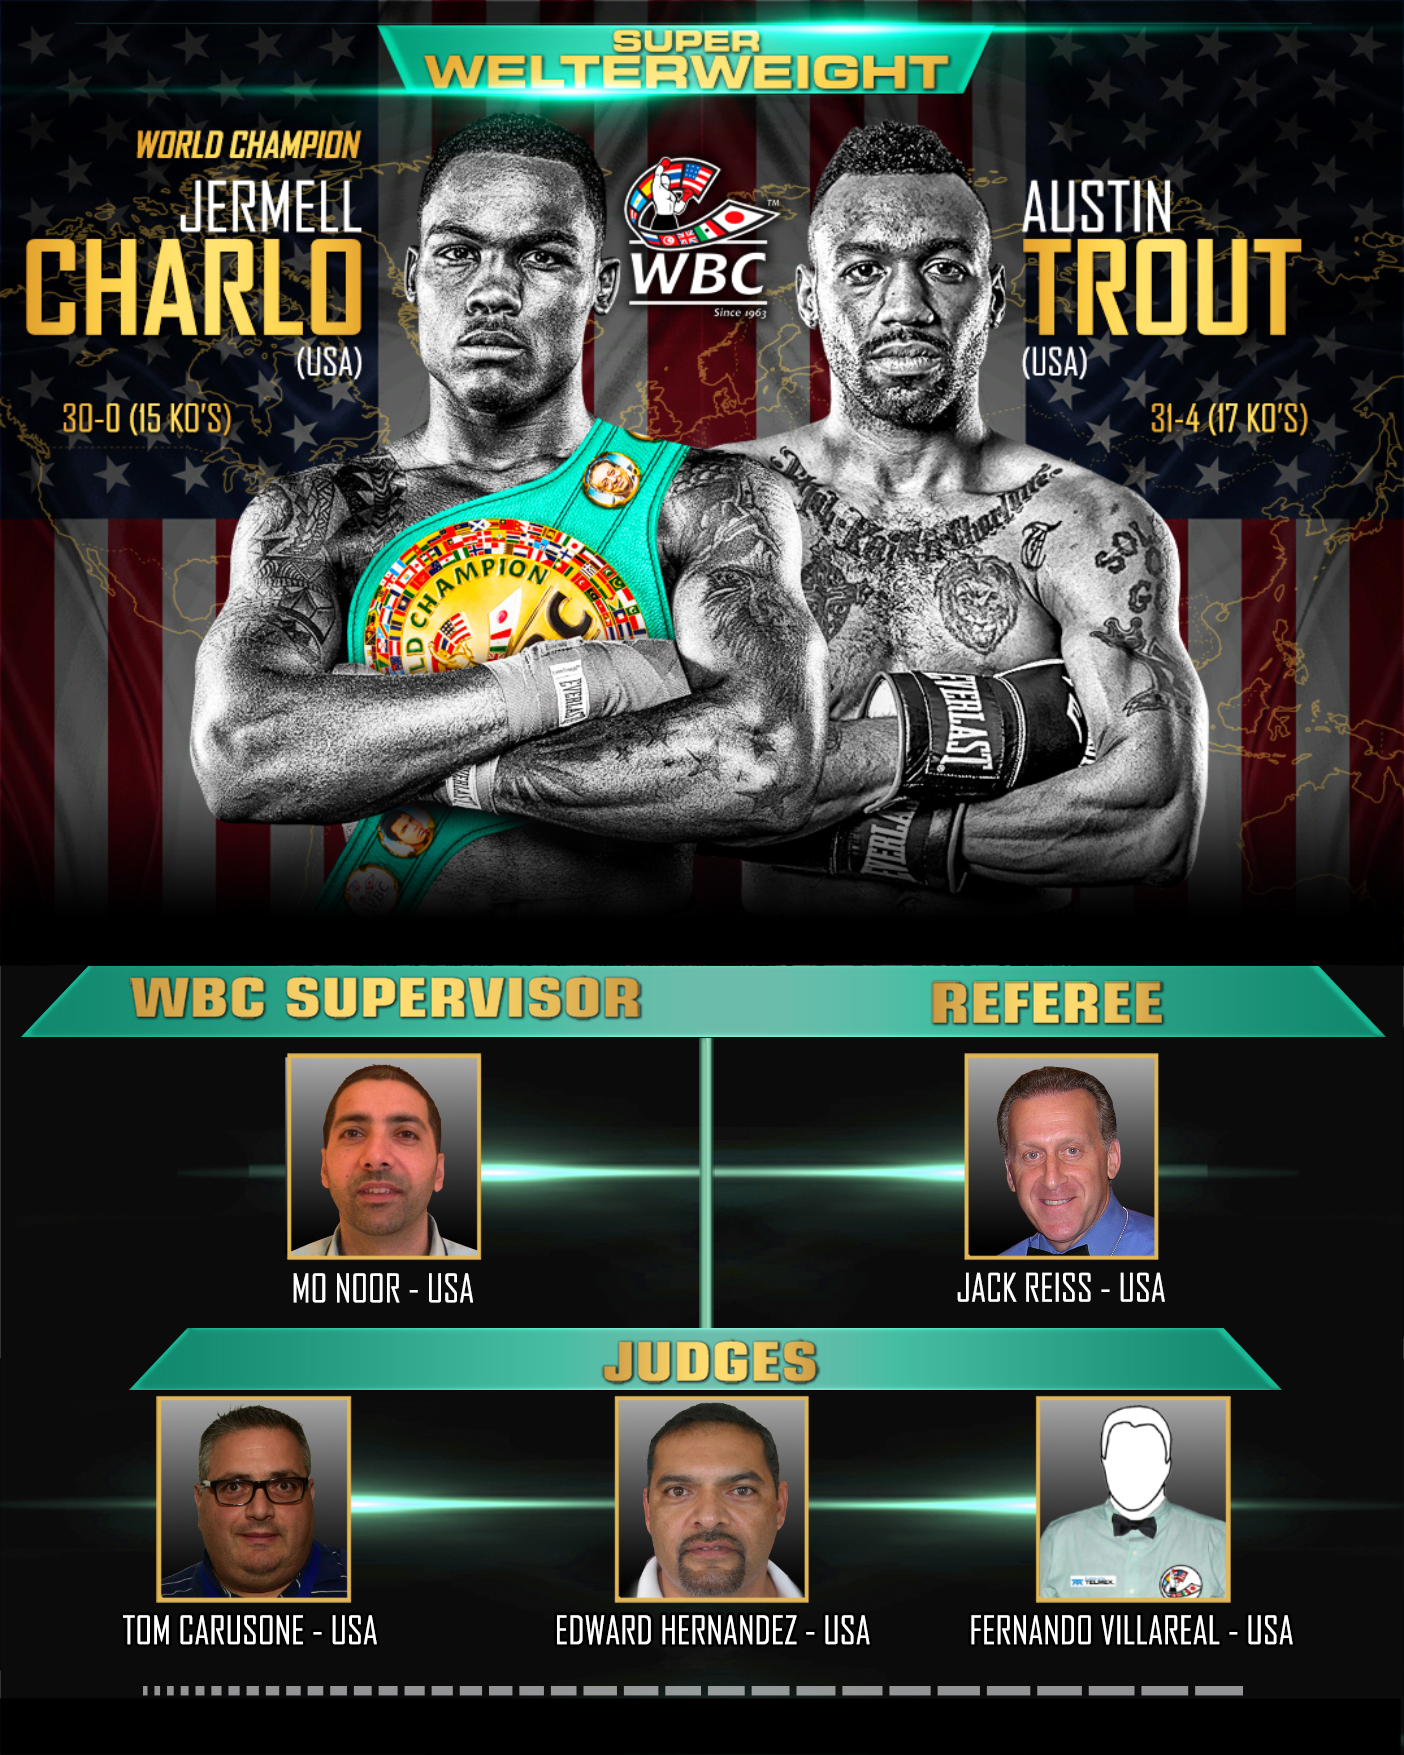 jermell-charlo-vs-austin-trout-ring-officials